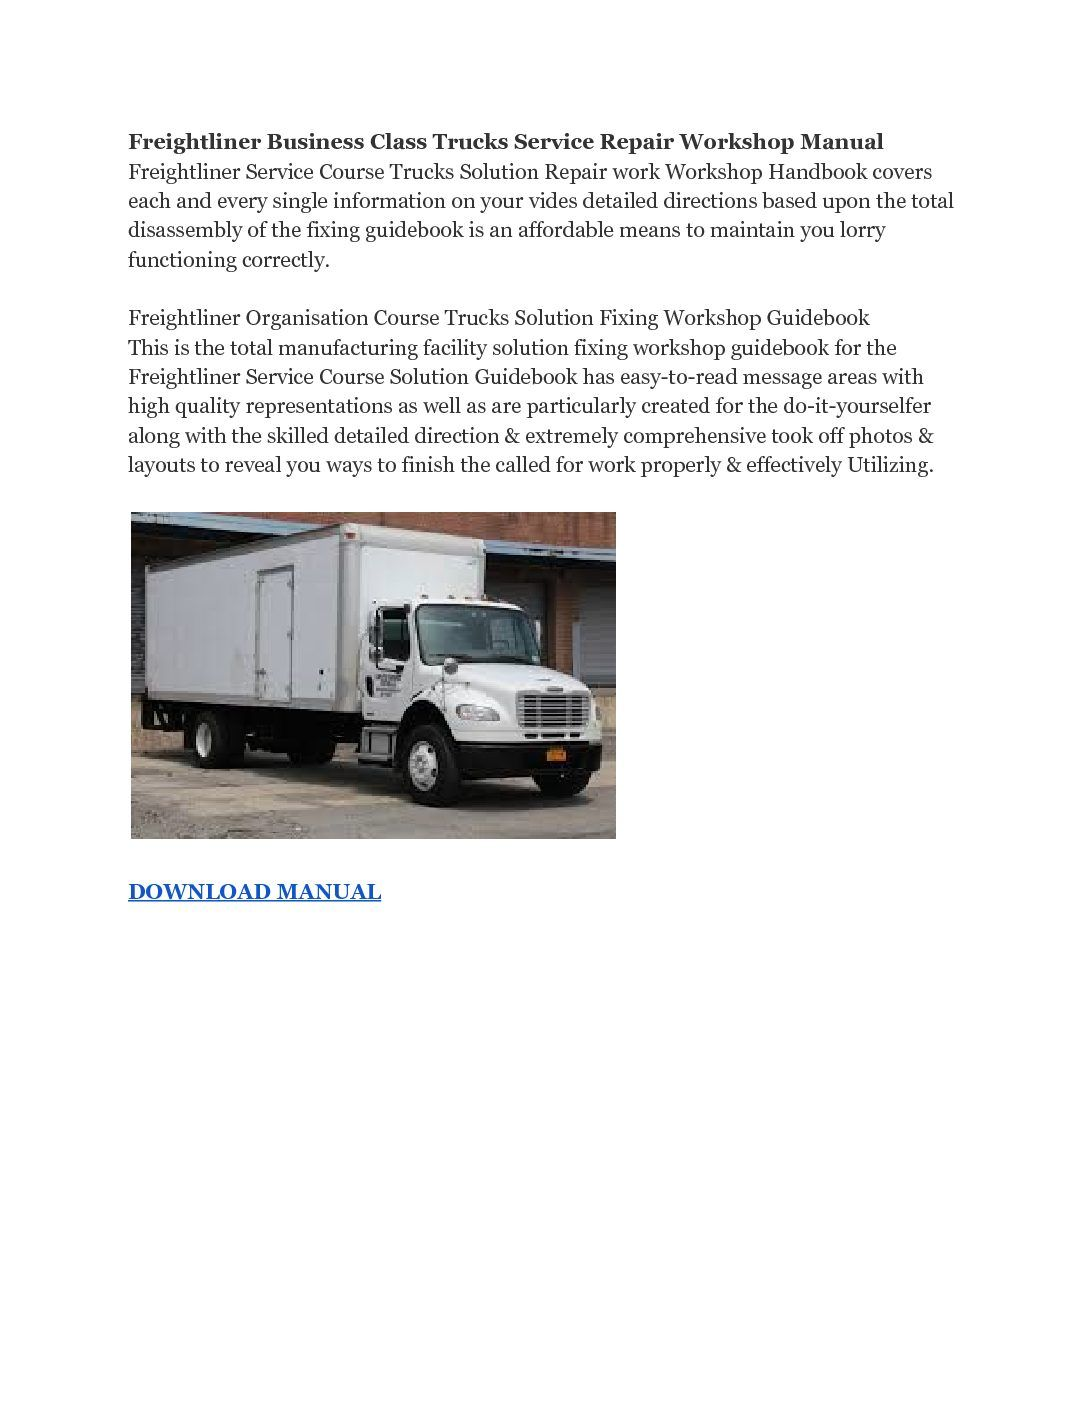 Freightliner Business Class Trucks Service Repair Workshop Manual